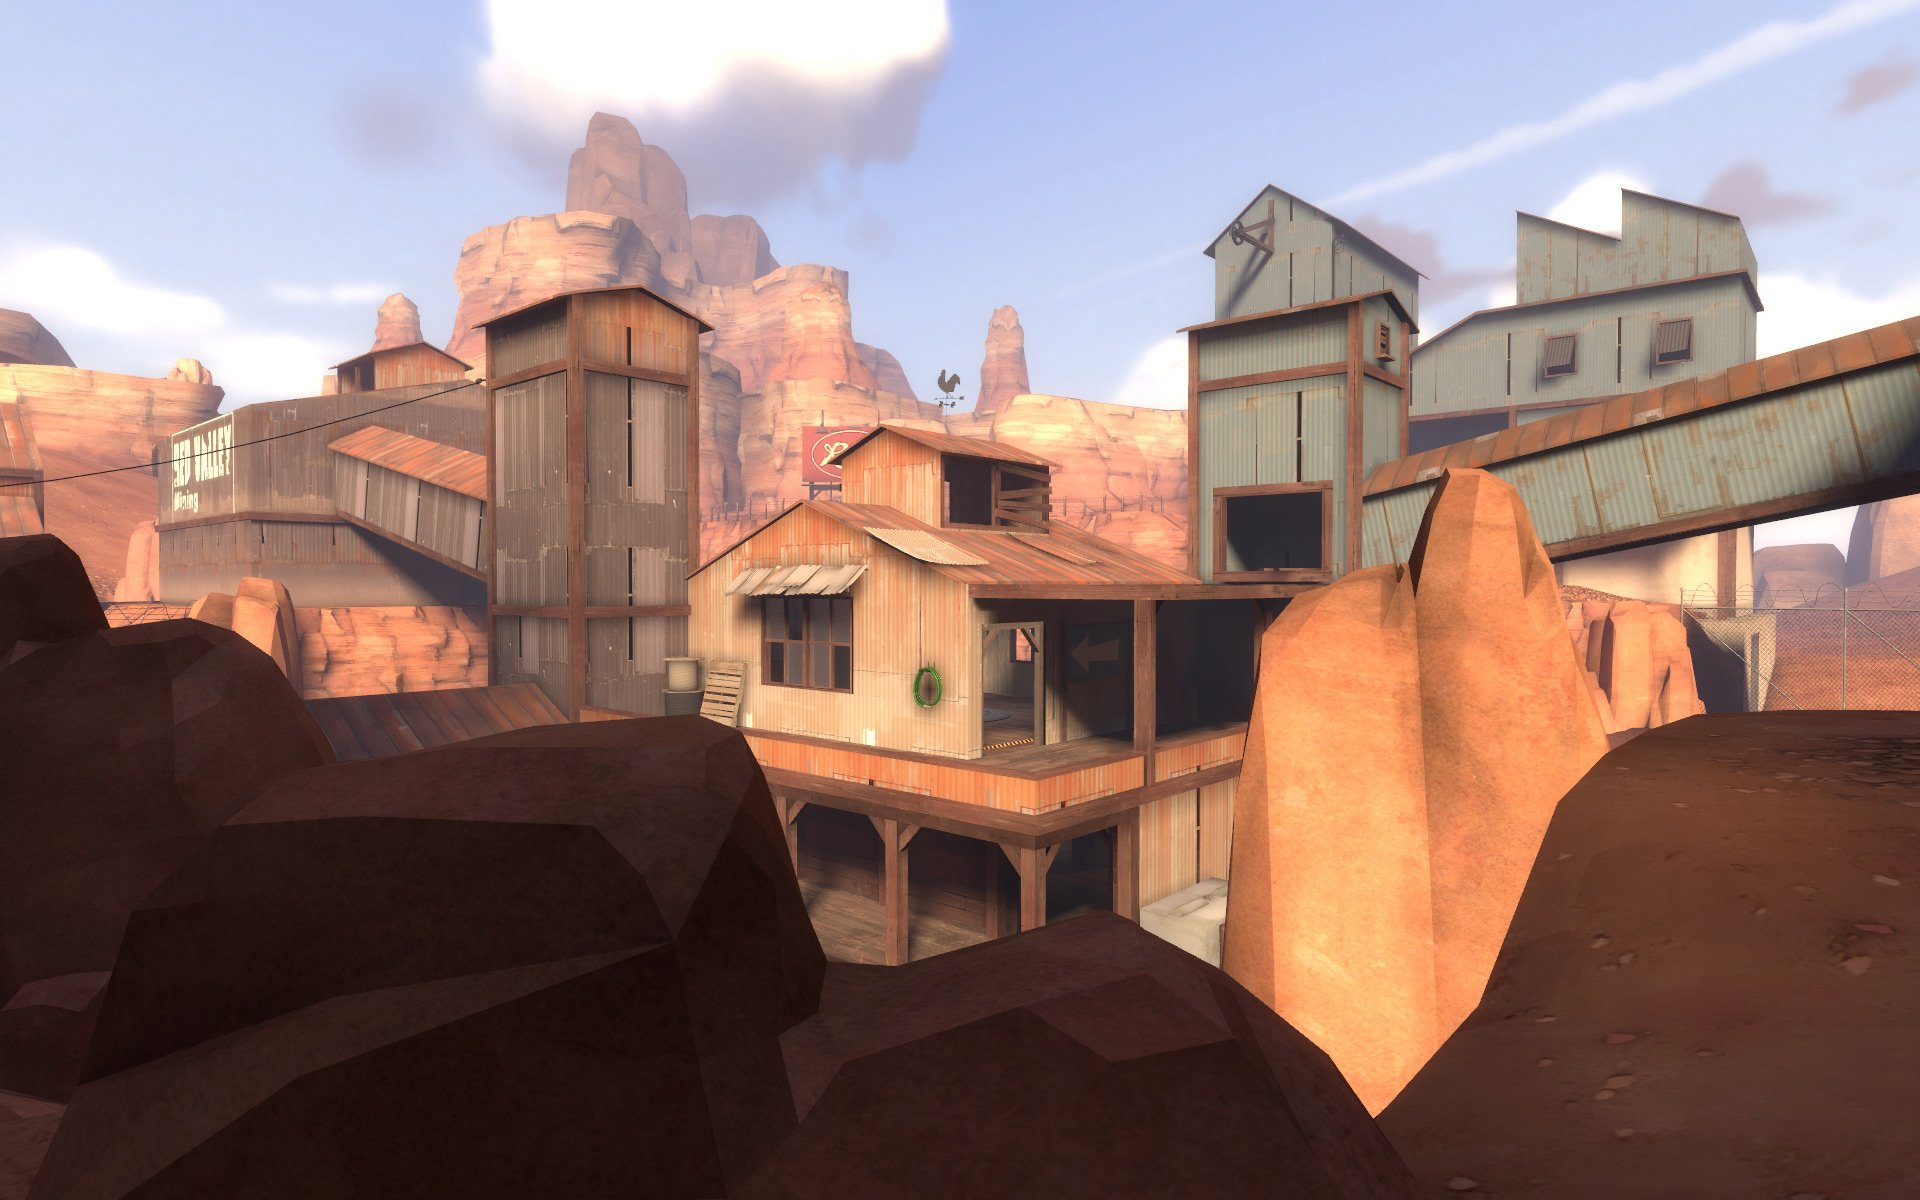 Goldtooth: Level Overview